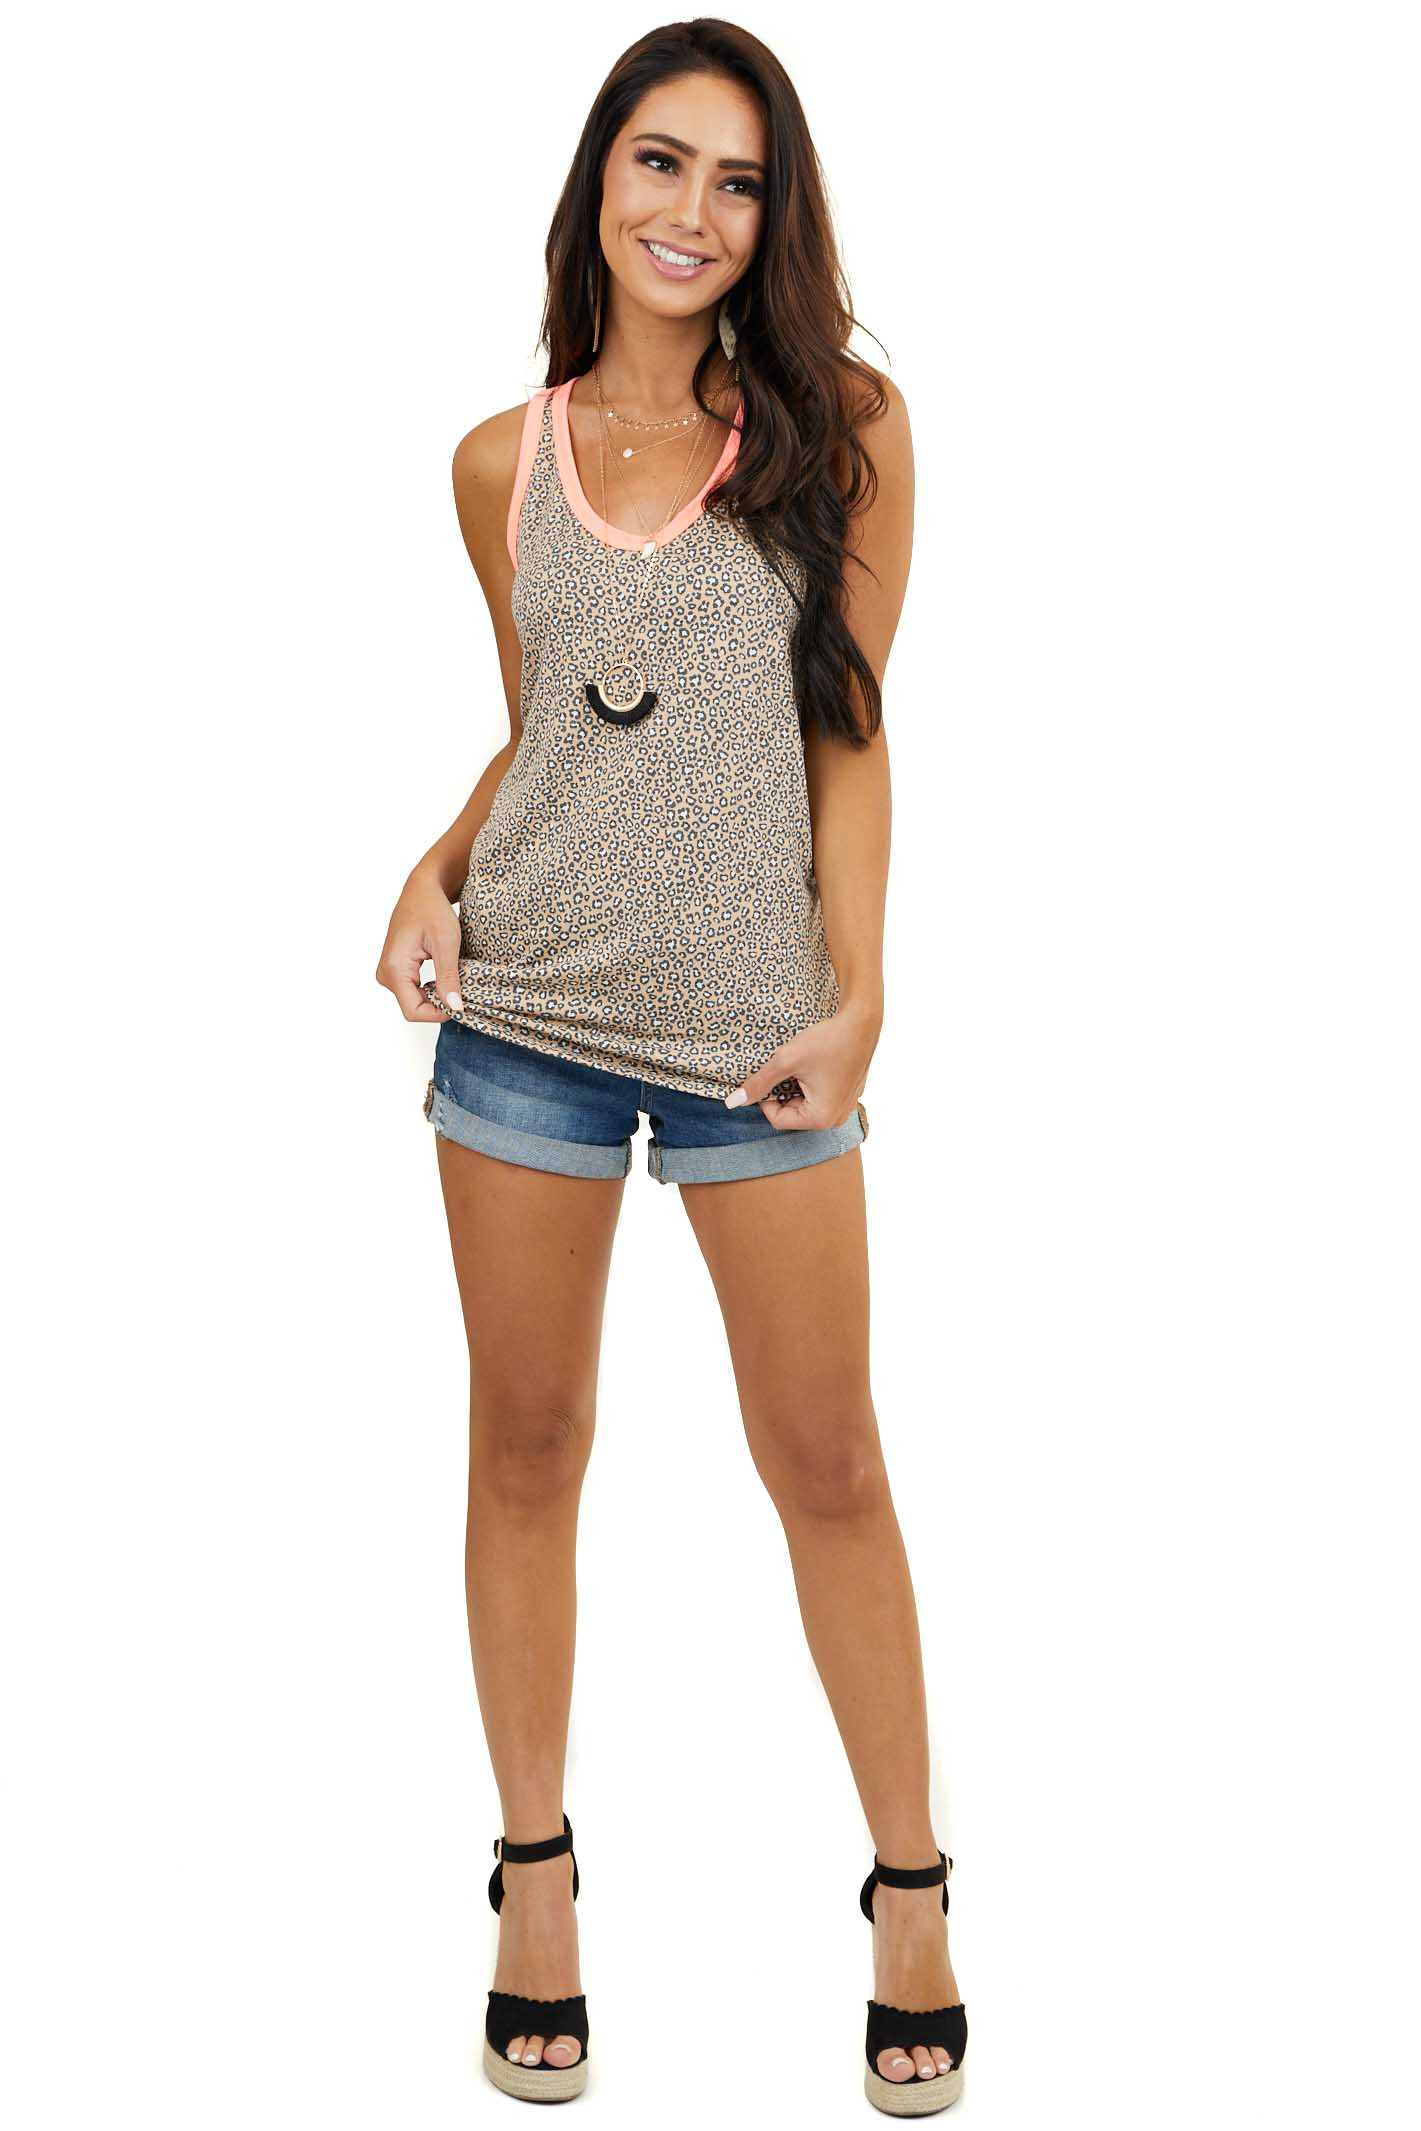 Desert Sand Leopard Tank Top with Neon Coral Trim Contrast